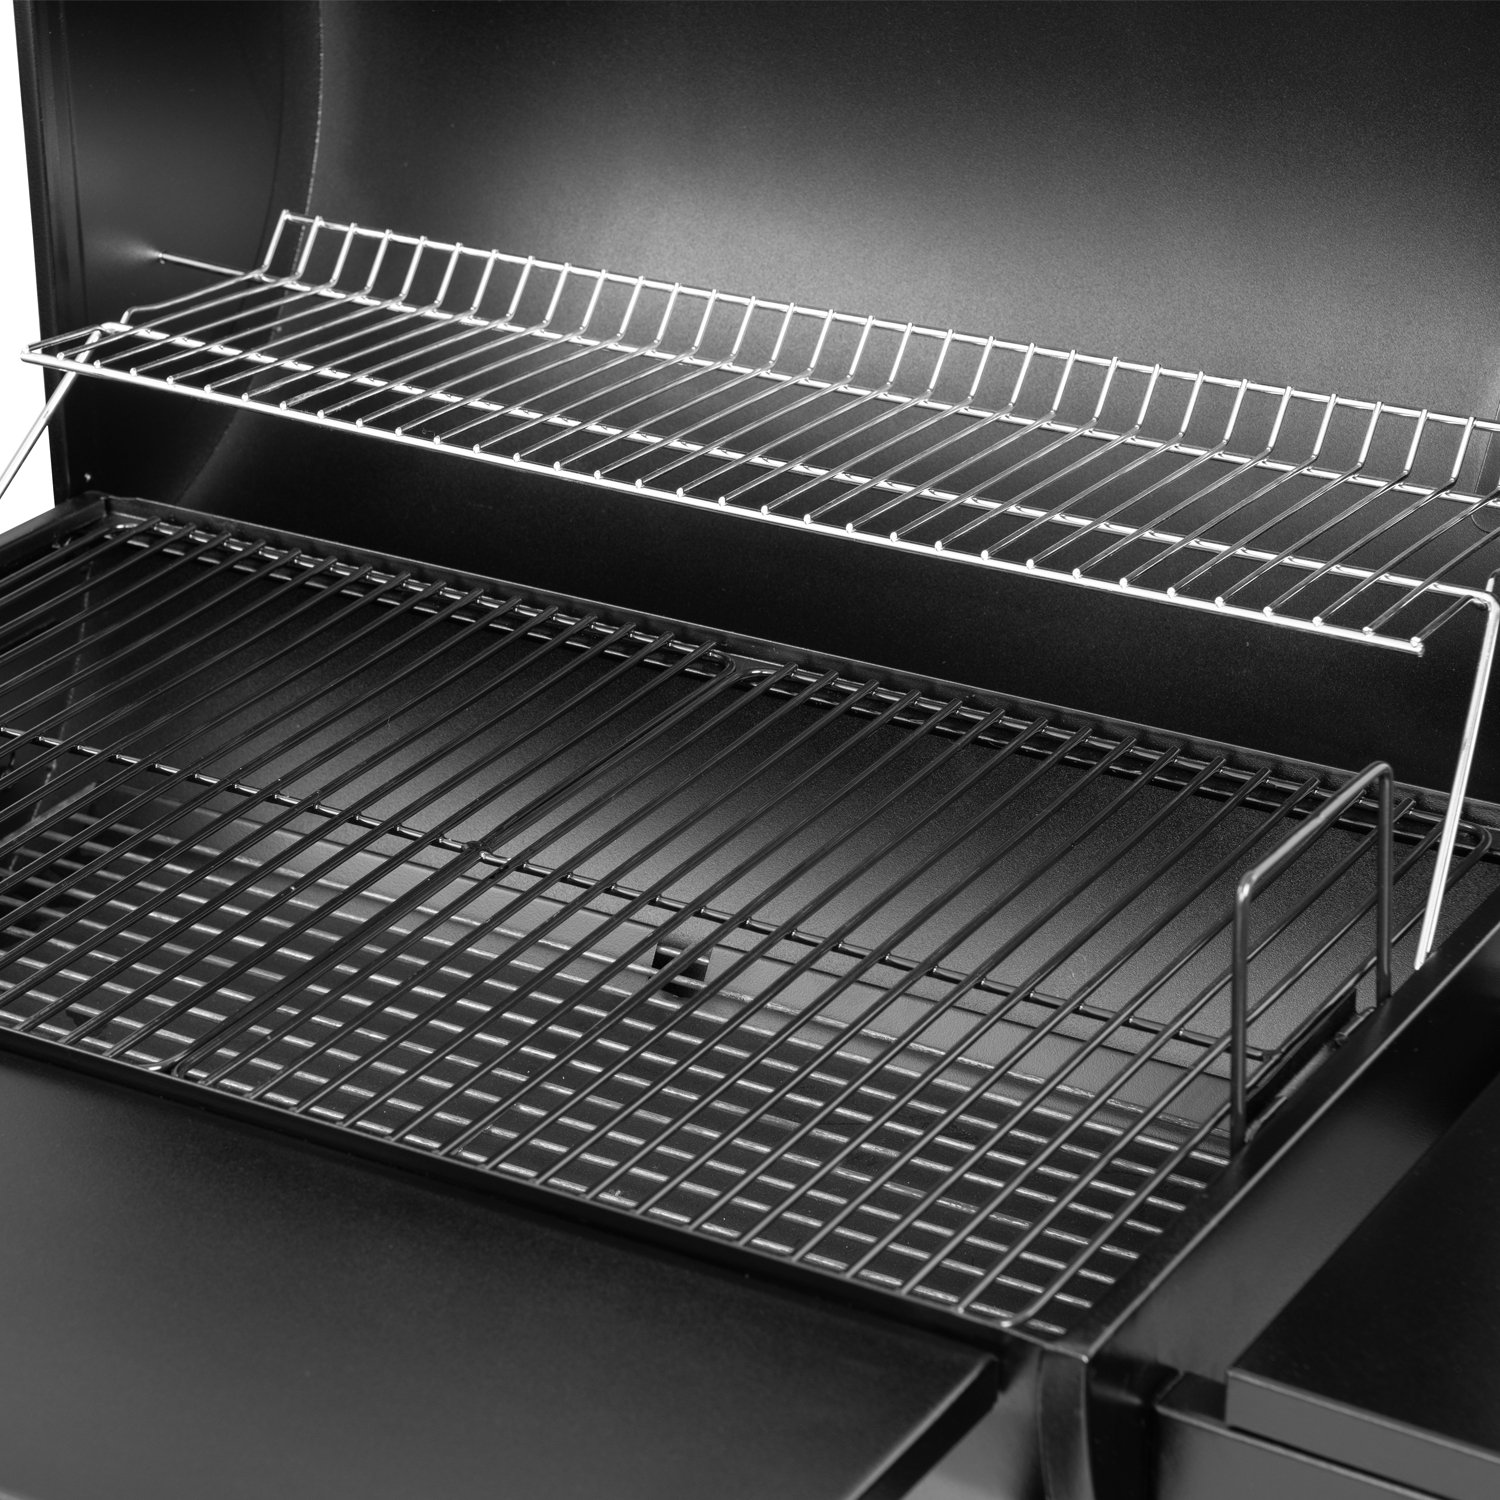 Royal Gourmet BBQ Charcoal Grill and Offset Smoker, 30'' L, 800 Square Inch, Outdoor for Camping, Black by Royal Gourmet (Image #4)